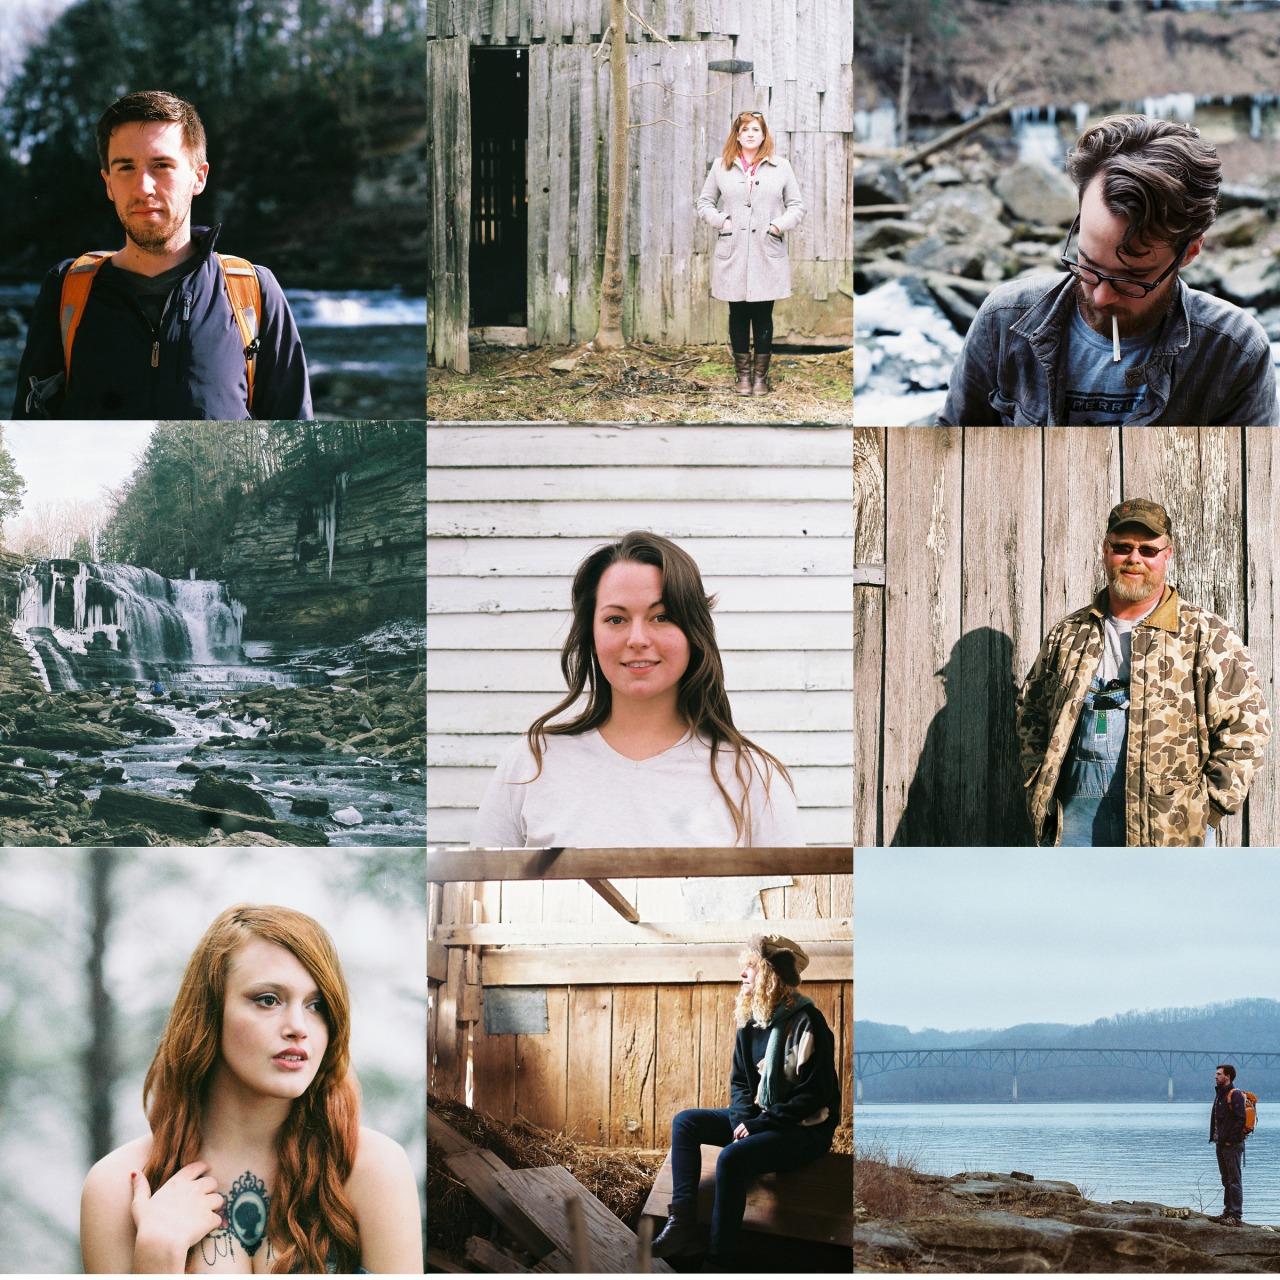 Film:    Been shooting a lot of film lately. Here are a few shots from the past week or so.